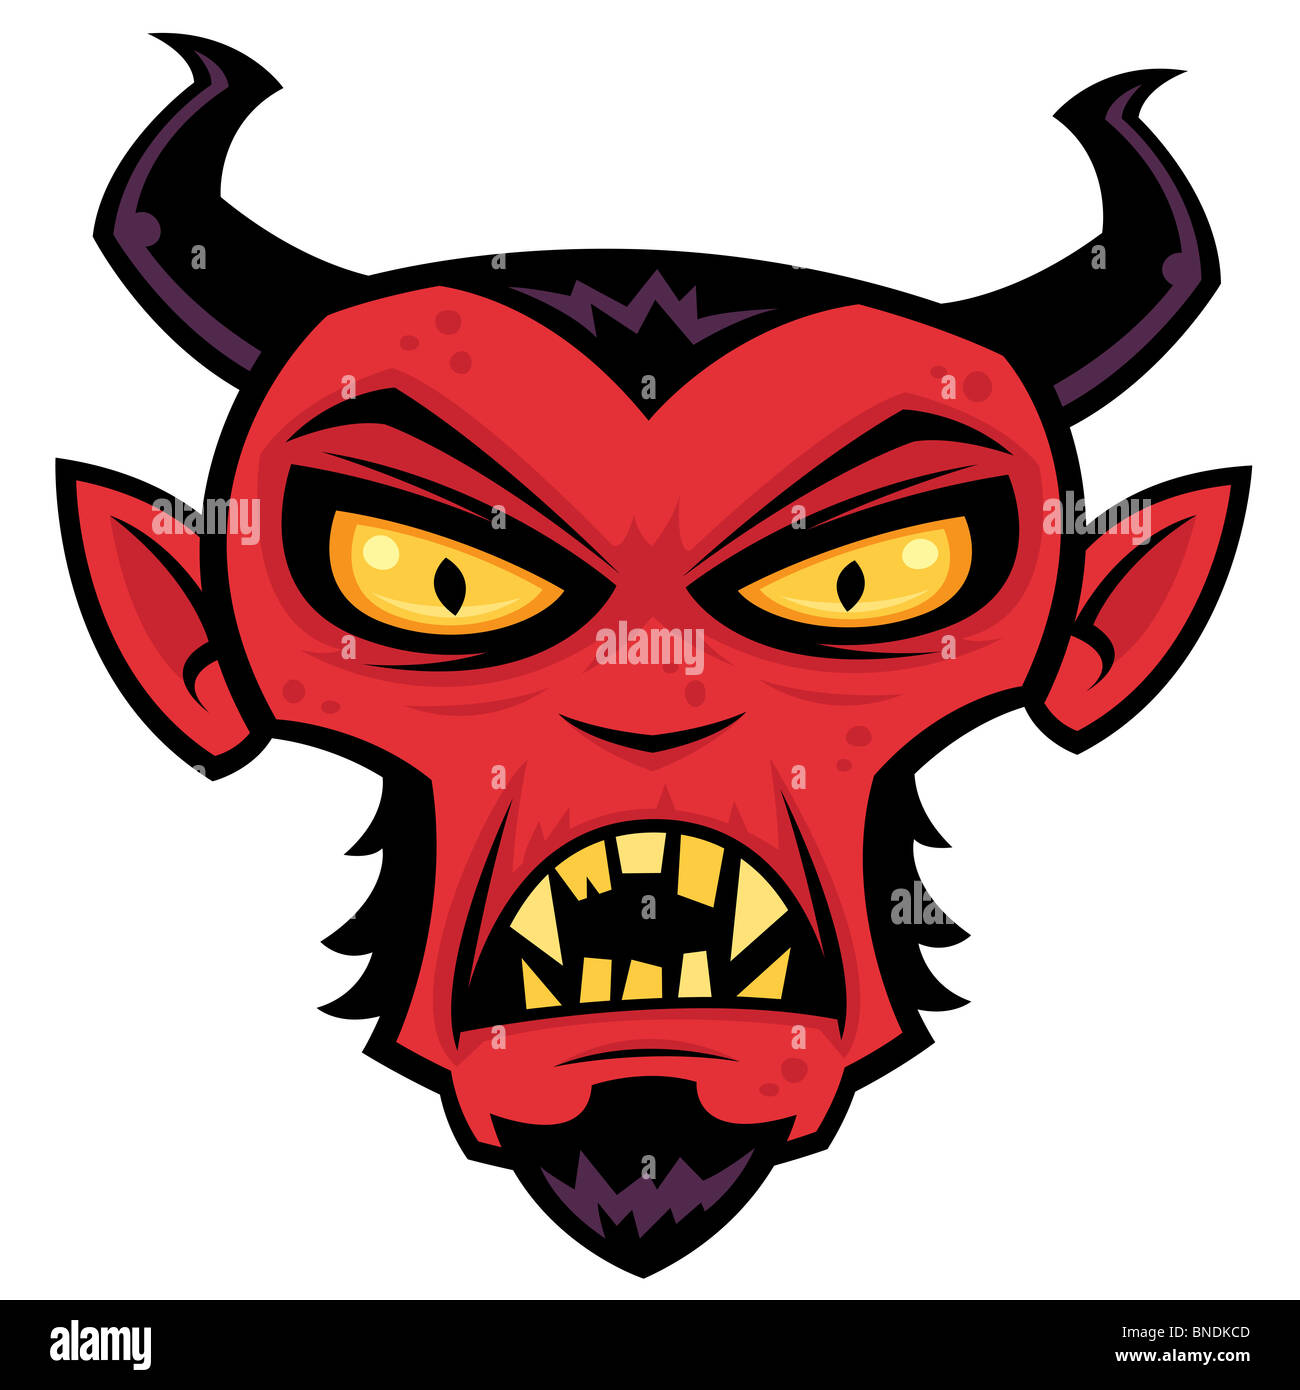 Mad Devil Character. Cartoon illustration of a mean red devil character with horns, goatee, yellow eyes and fangs. - Stock Image